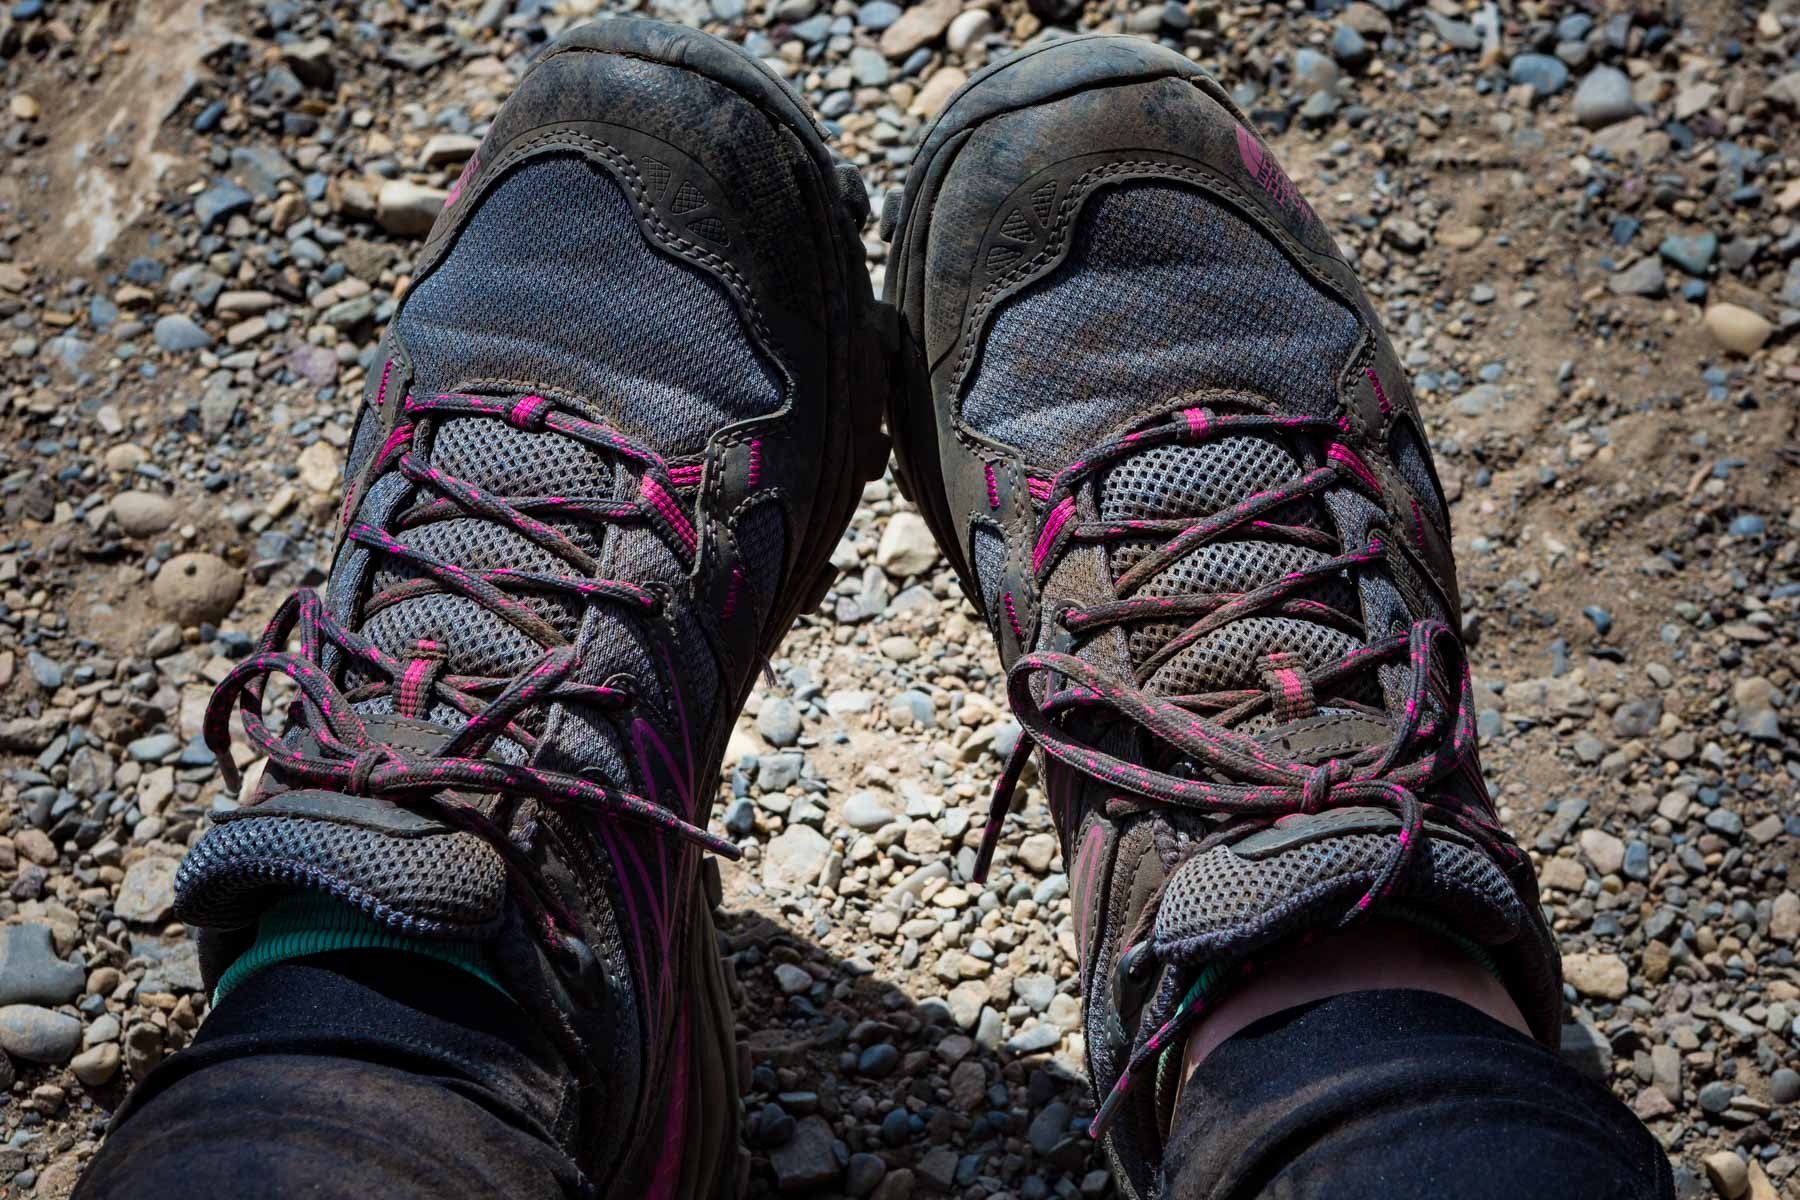 052d29cfb GEAR REVIEW: THE NORTH FACE HEDGEHOG FASTPACK HIKING SHOES – TRACEY ...